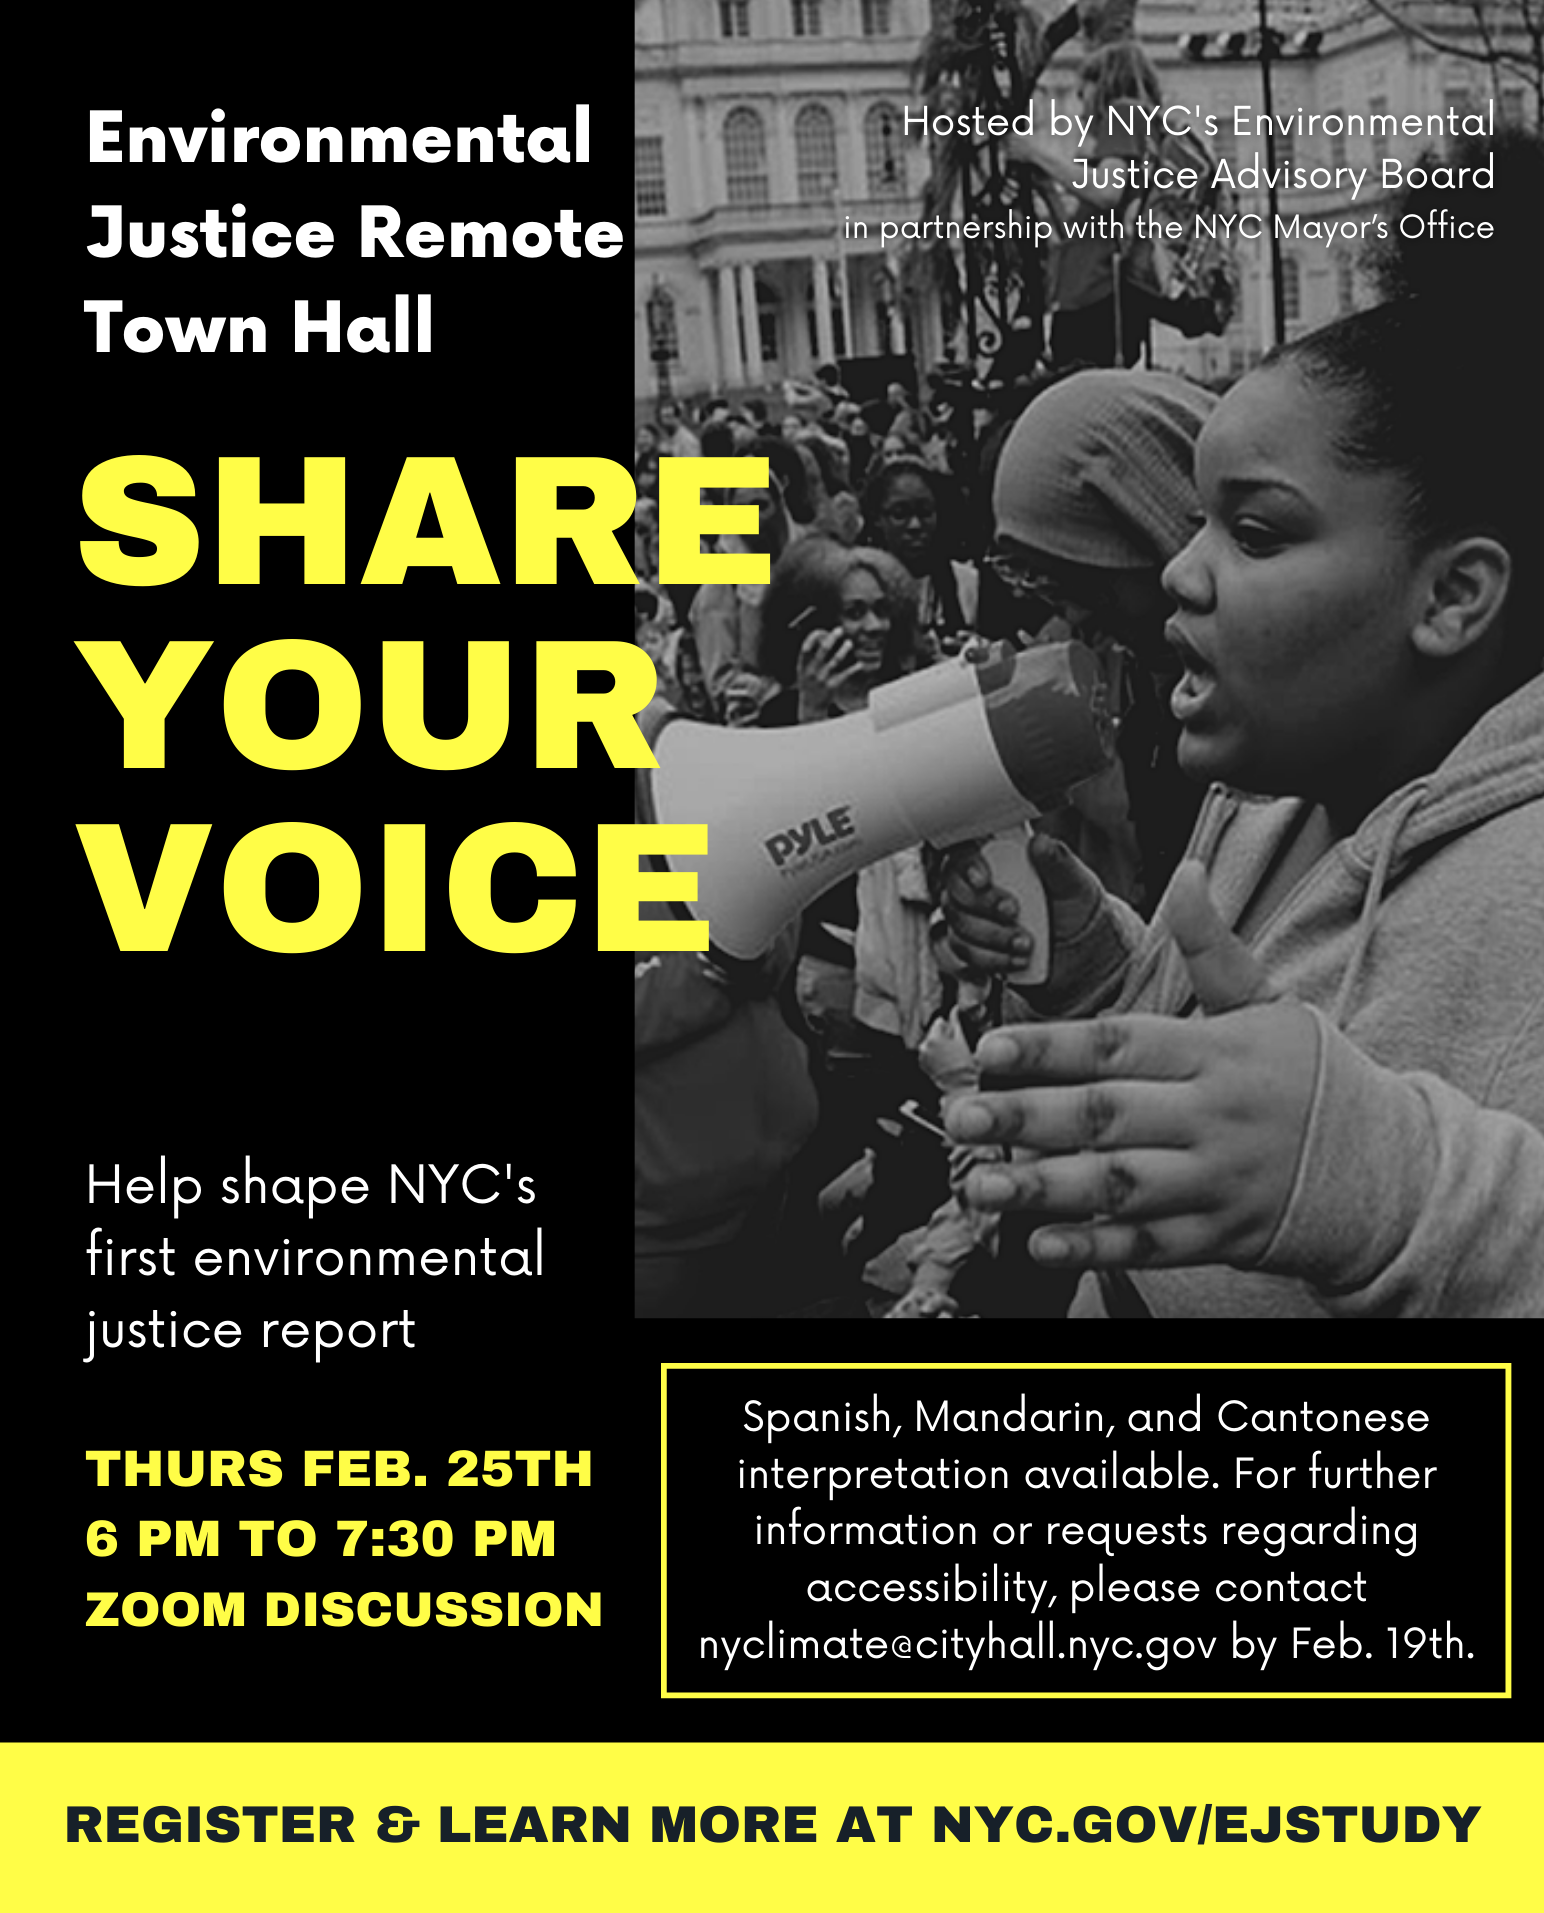 Flyer for Share Your Voice - New York City Environmental Justice Remote Town Hall